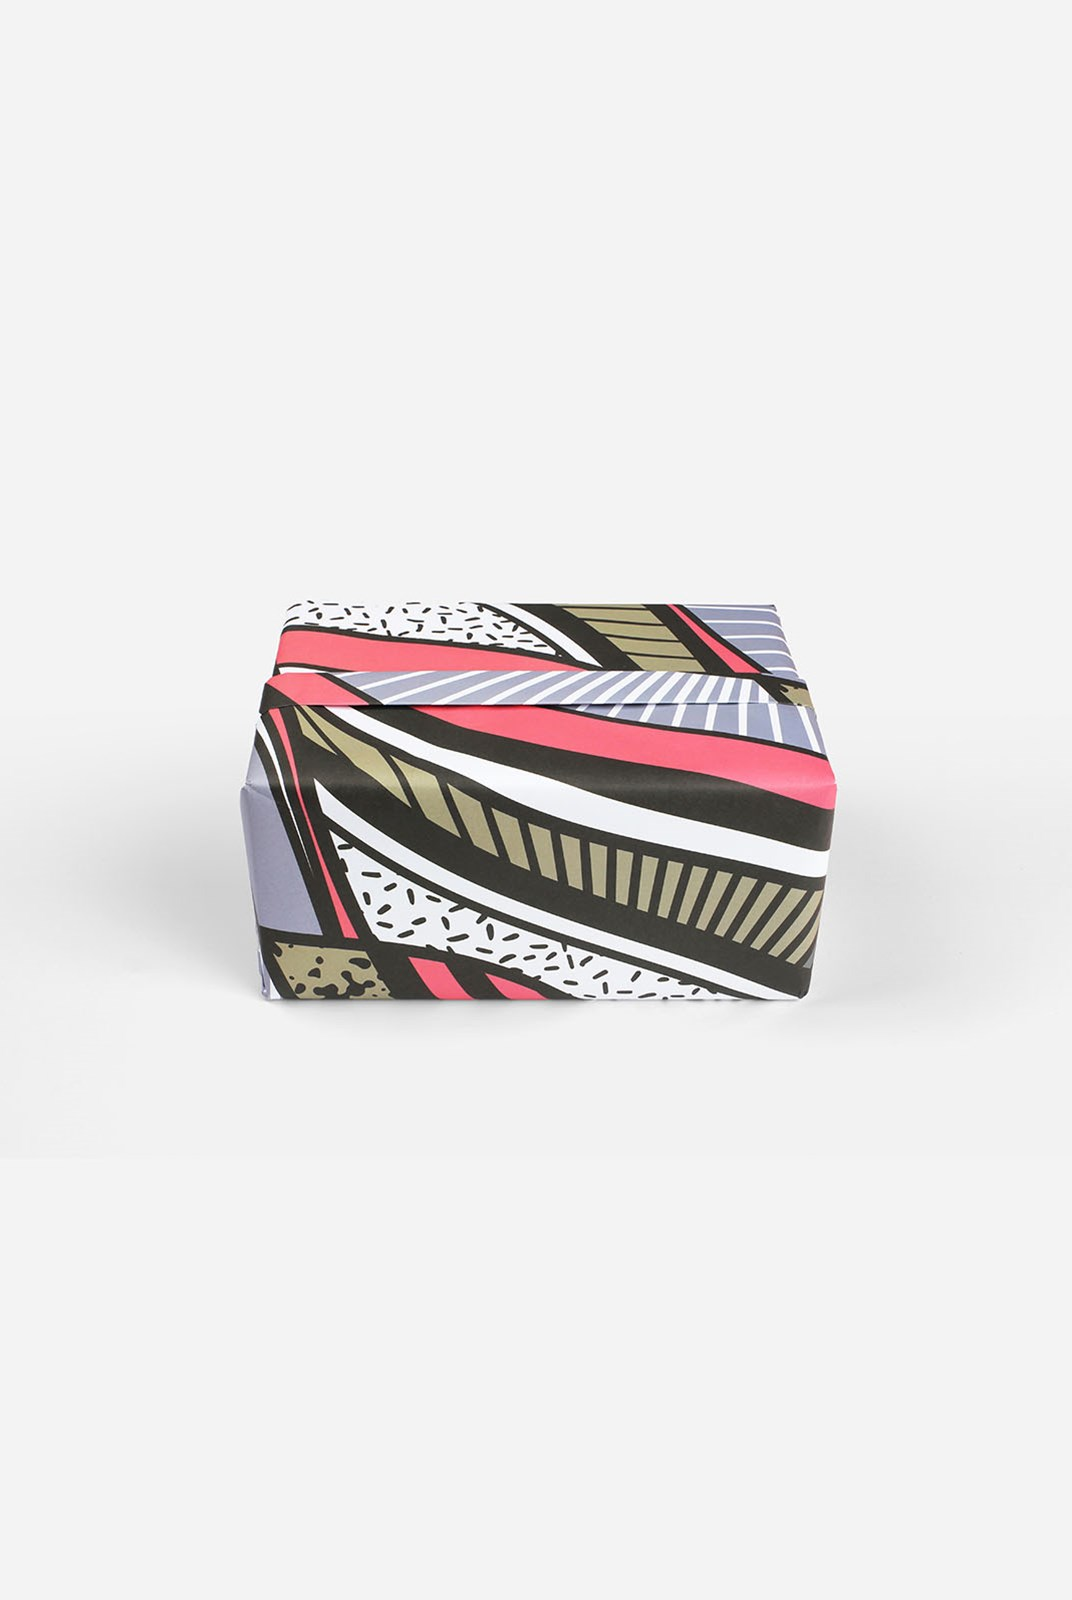 Papier Tigre - Single Wrapping Sheet - The Pink Patchwork